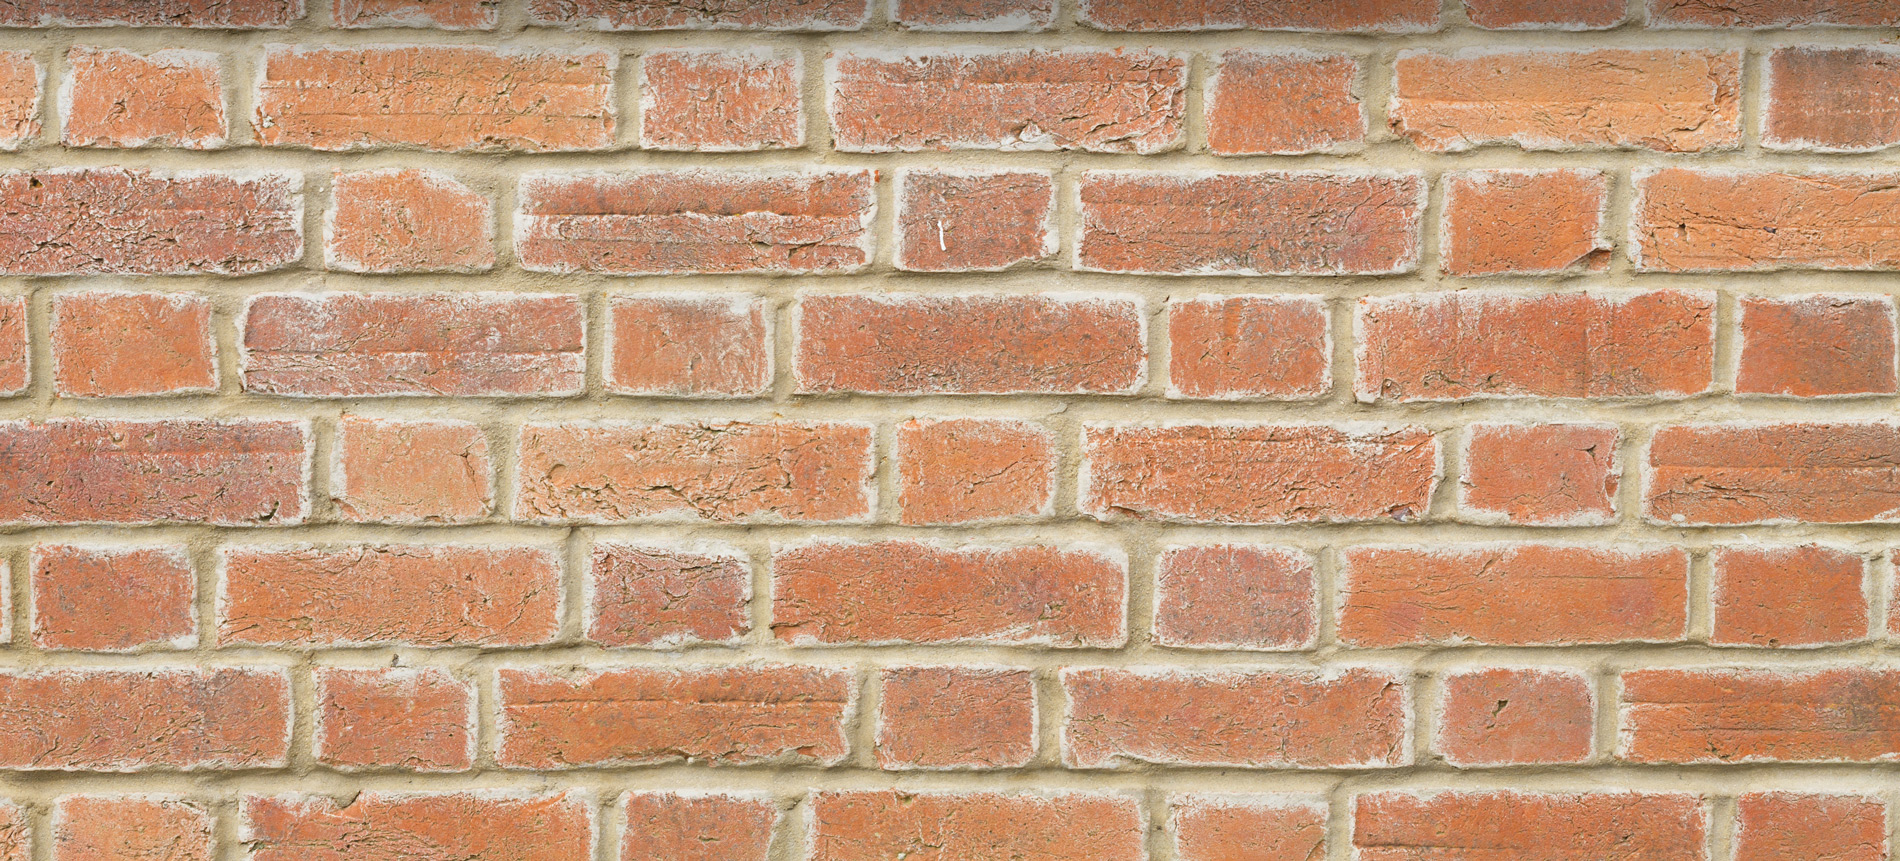 Repointing And Bricklaying Cost